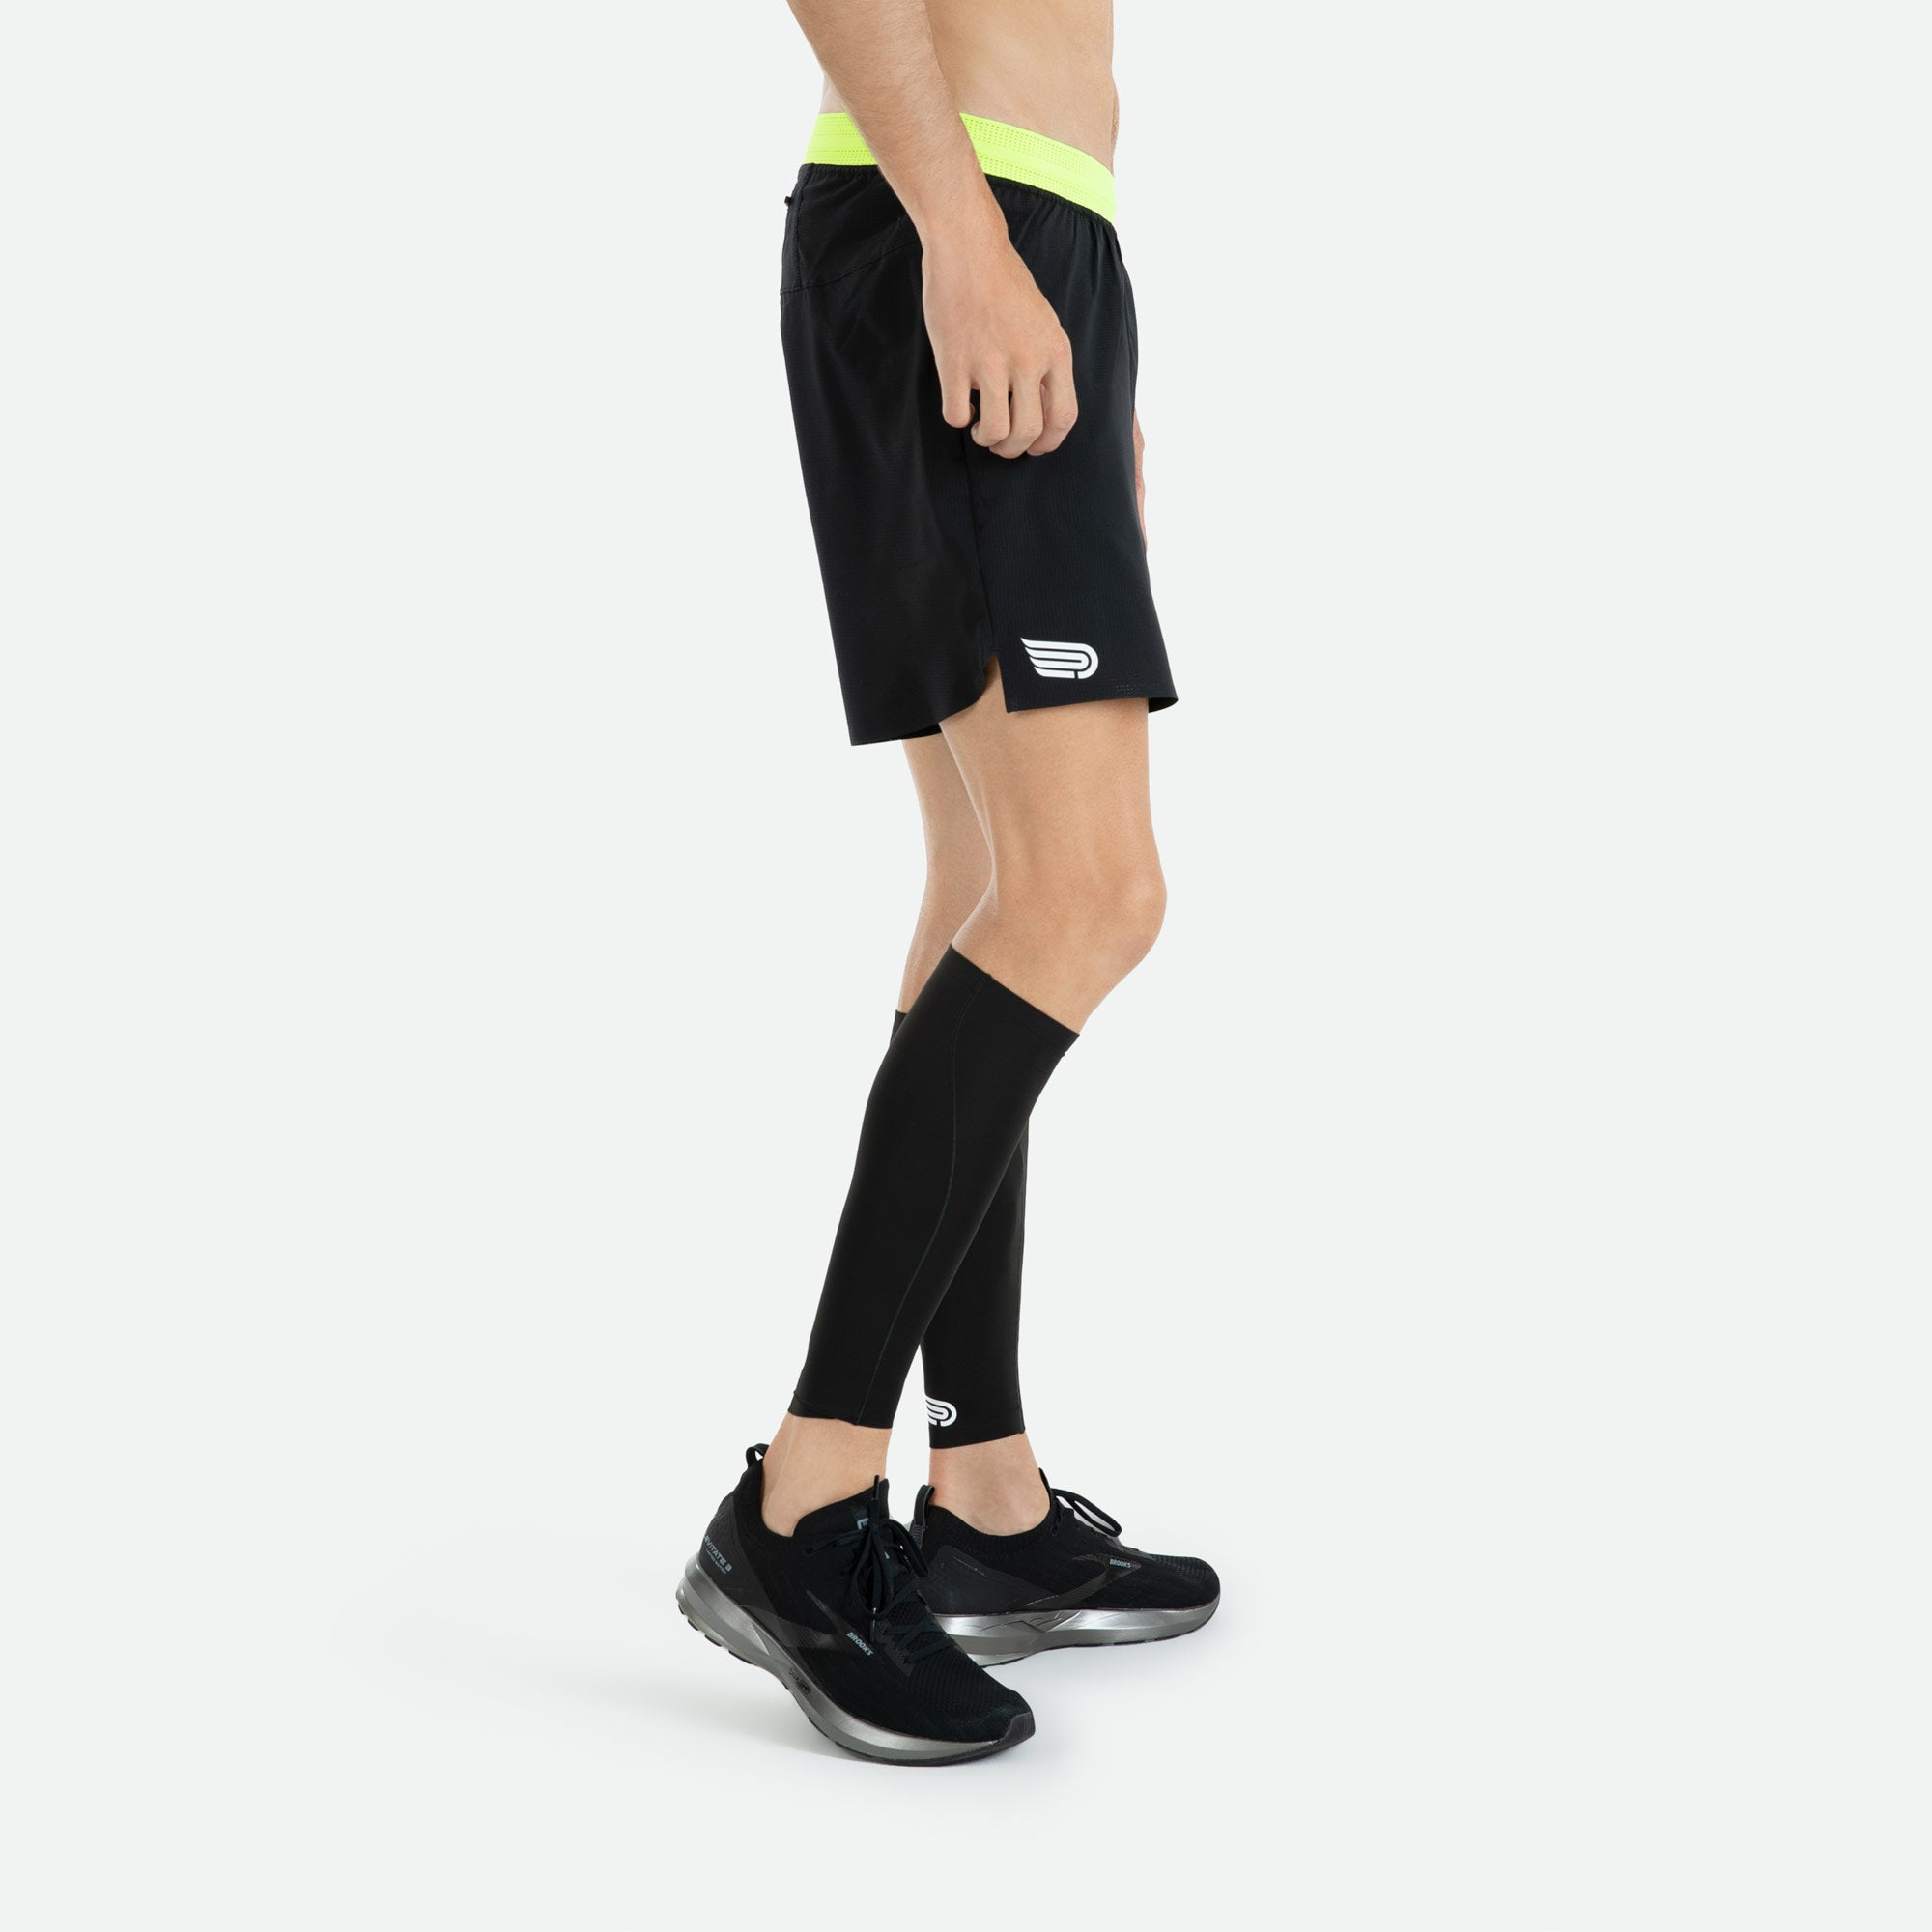 Italian Framis bonded hems and side seams with our Pressio men's black Ārahi 6.5'' run short for low profile lightweight performance.